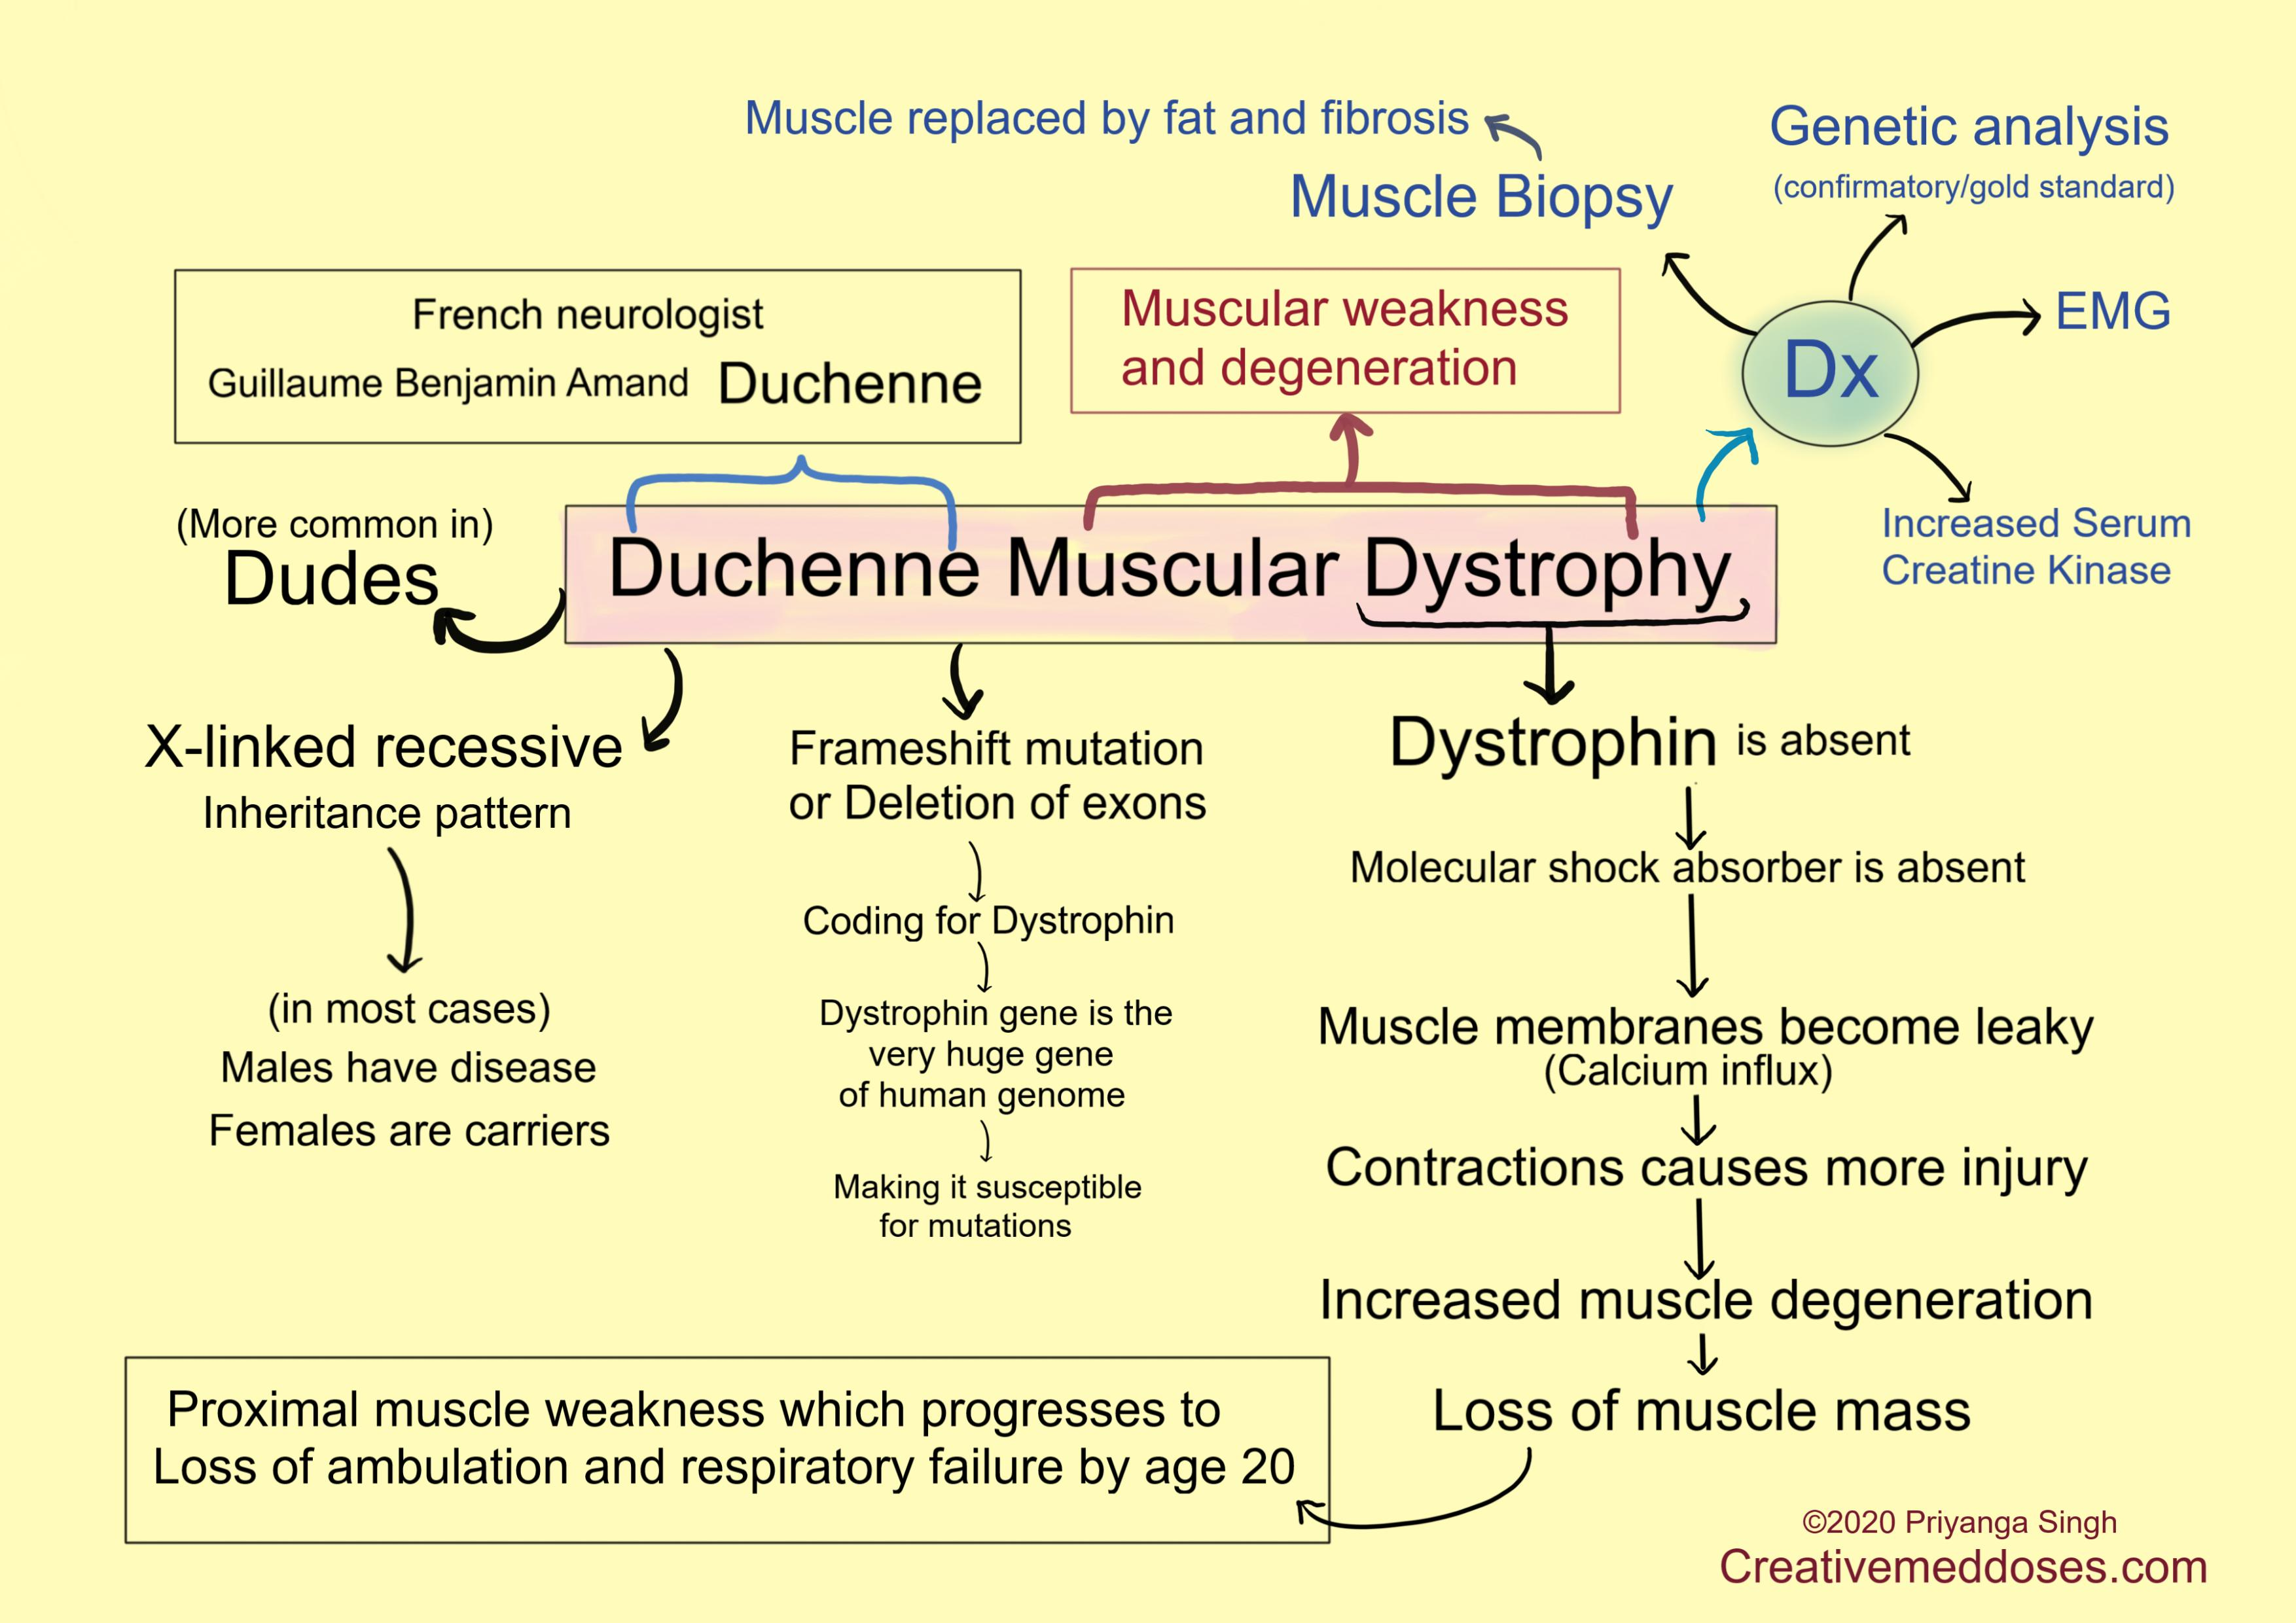 Duchenne muscular dystrophy illustrations - Creative Med Doses